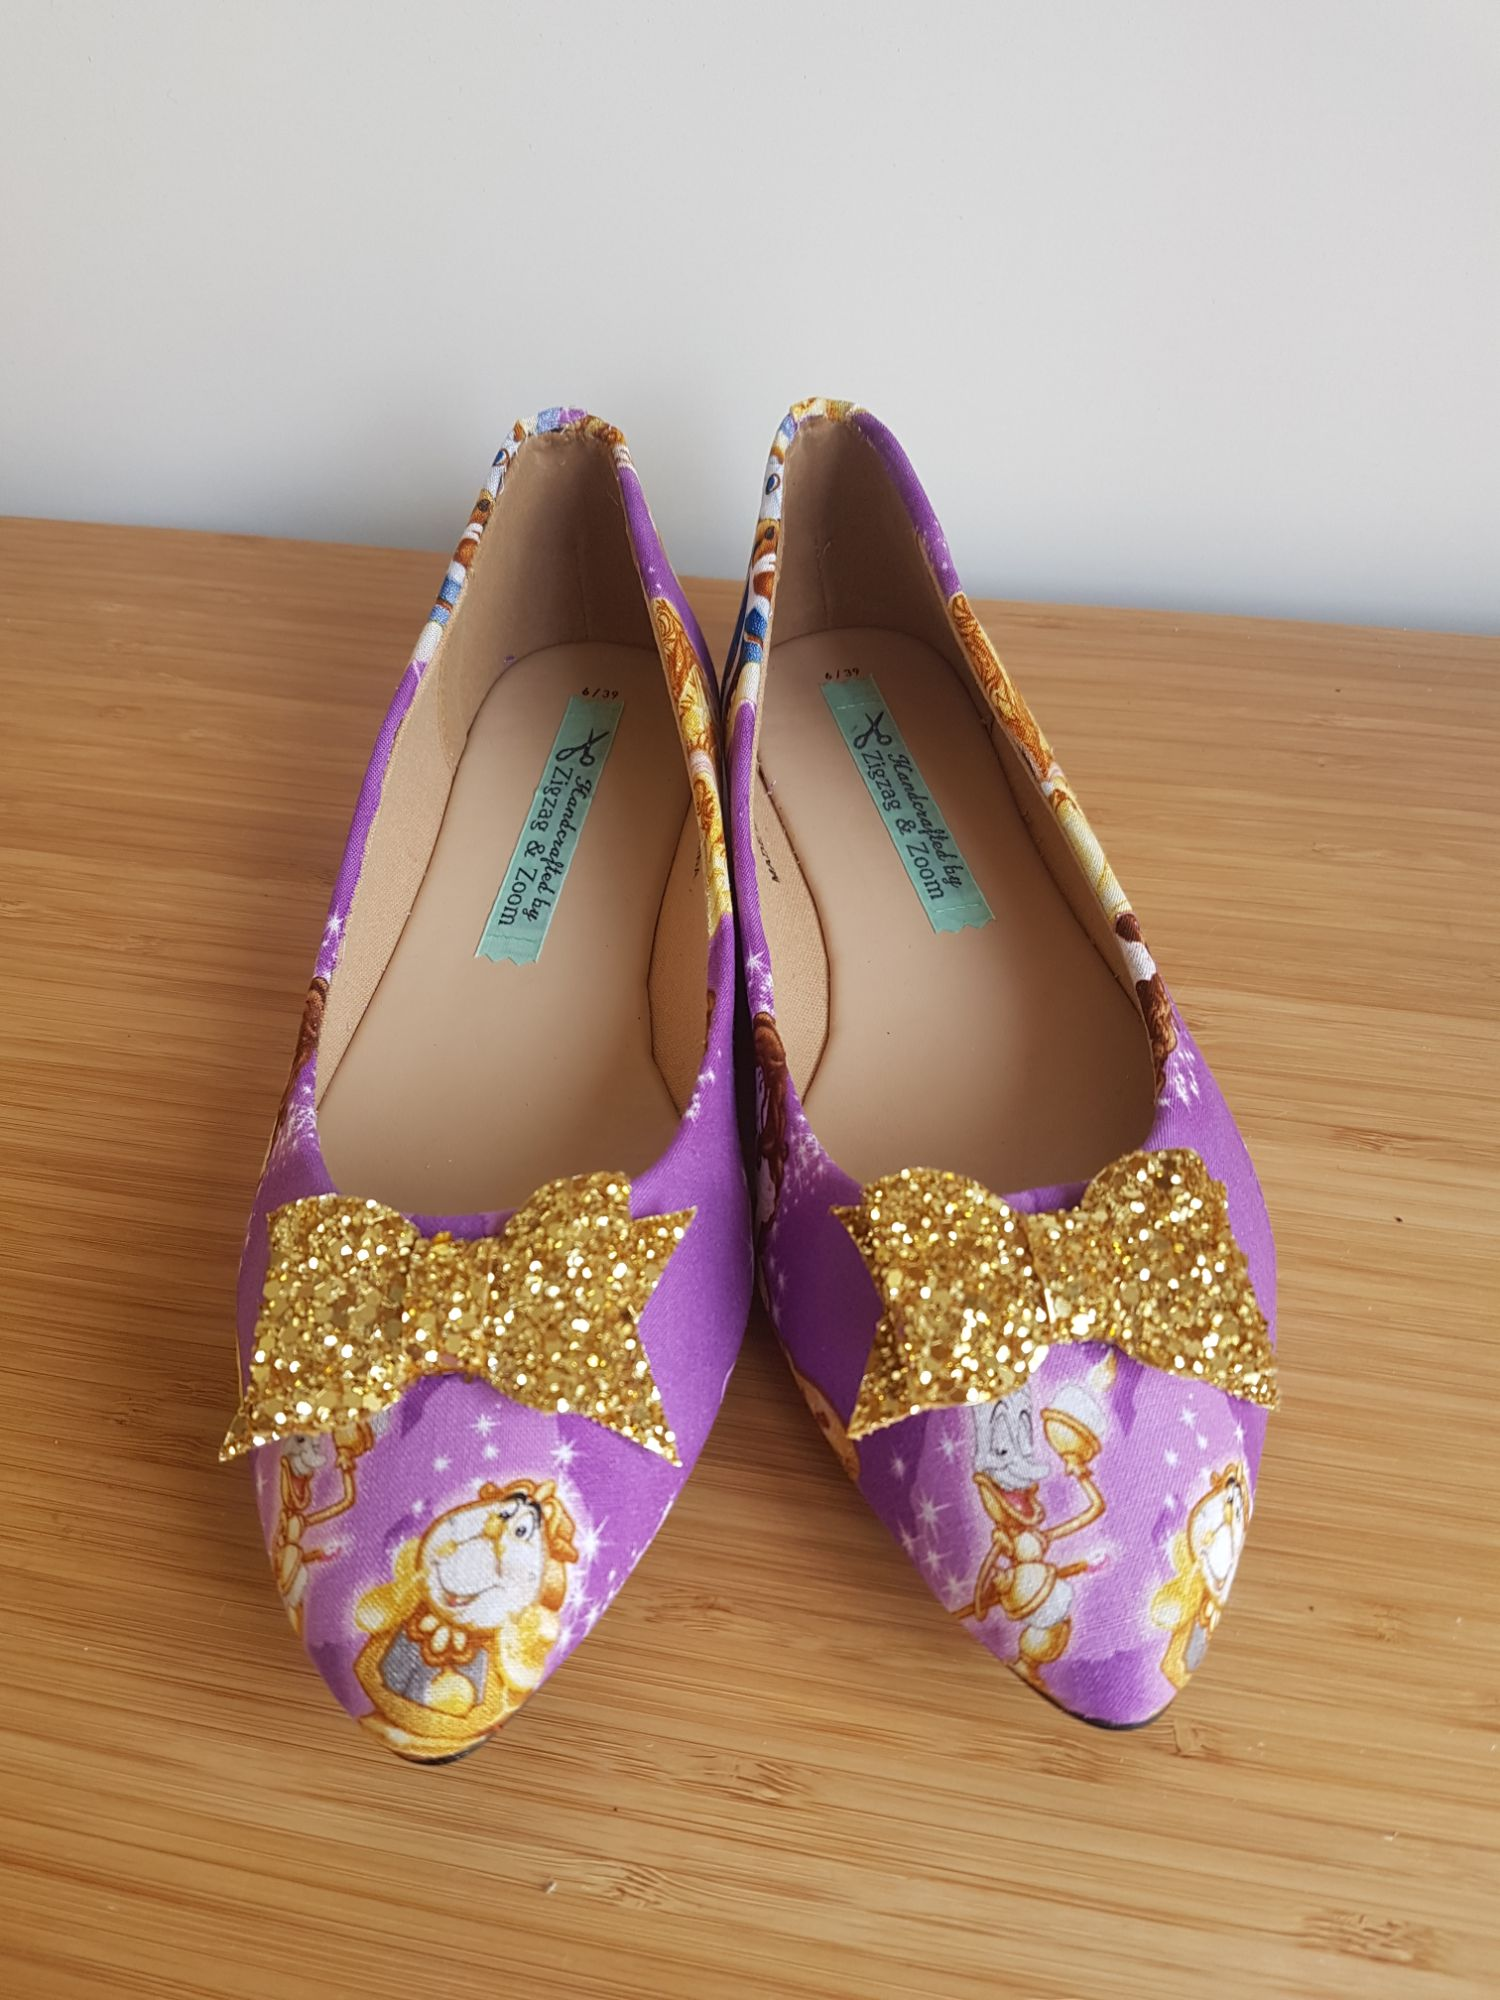 Beauty and the beast flats